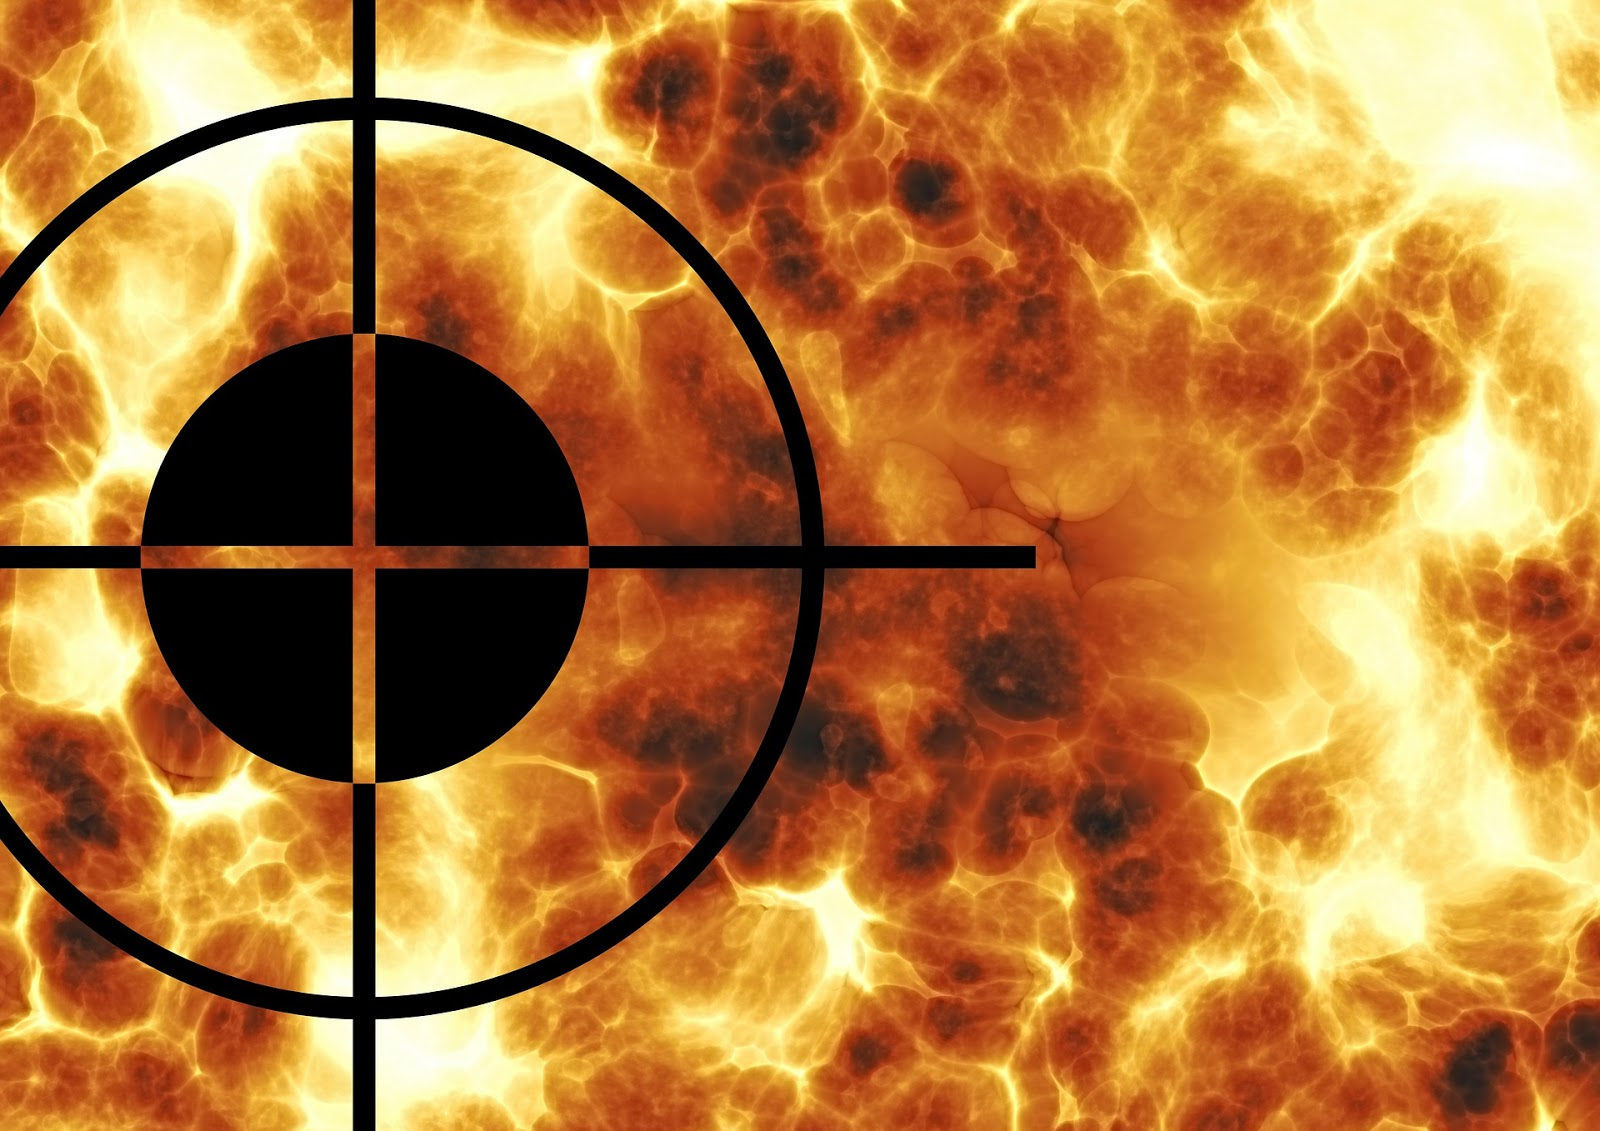 A black crosshairs in front of a wall of fire to illustrate a blog post about movies about the war on terrorism